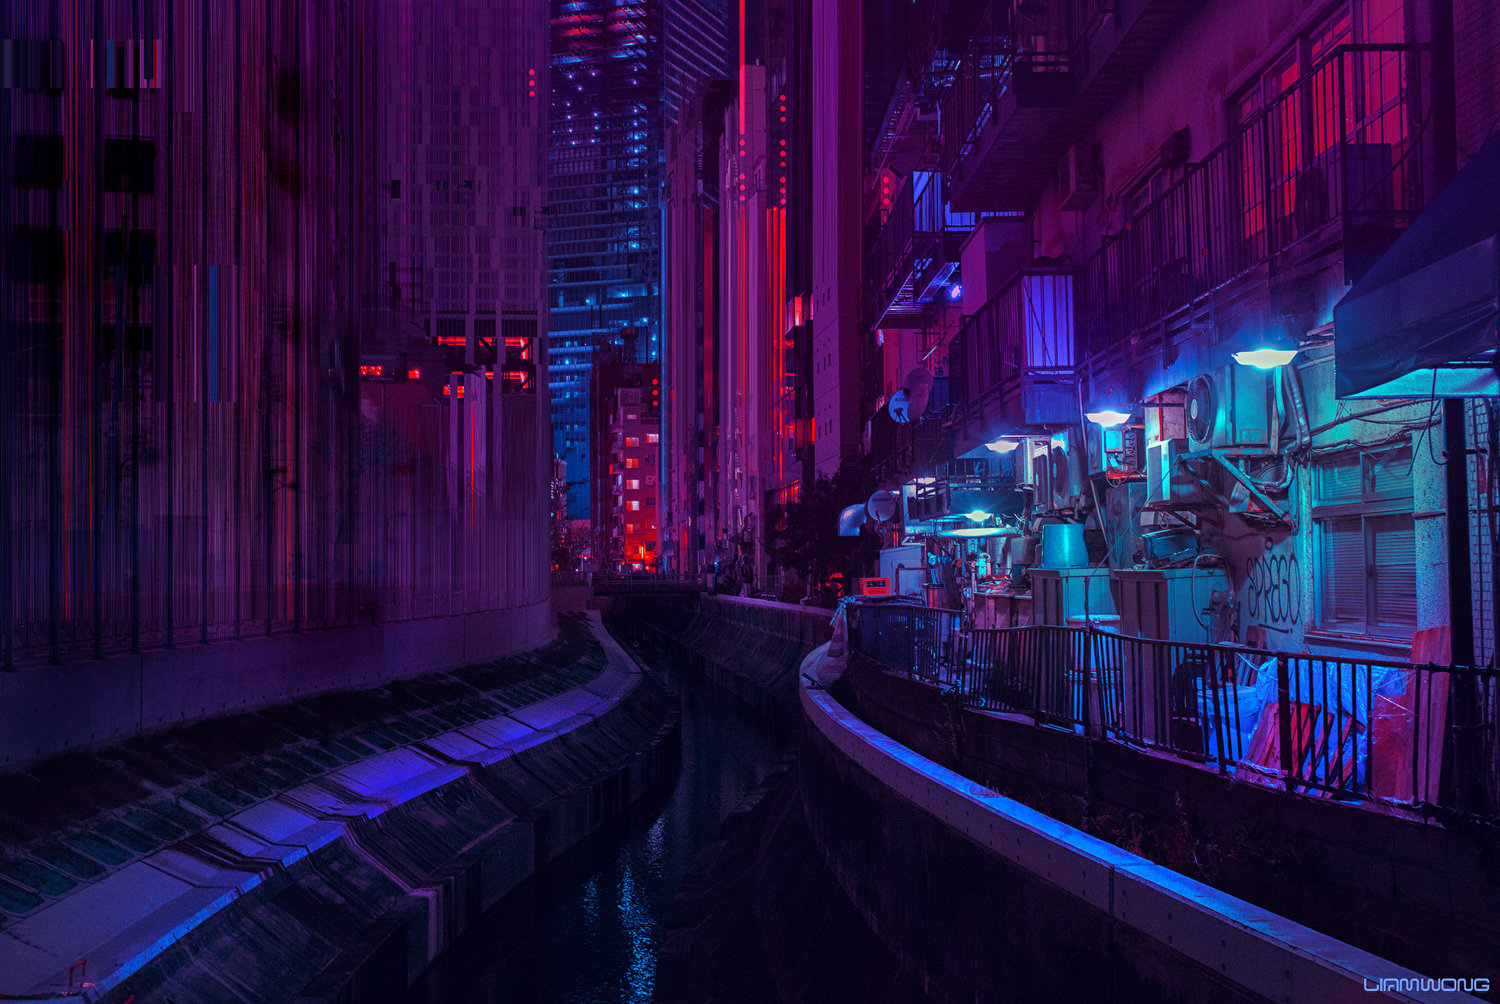 Liam Wong Art Director Photographer Find over 100+ of the best free tokyo neon images. liam wong art director photographer